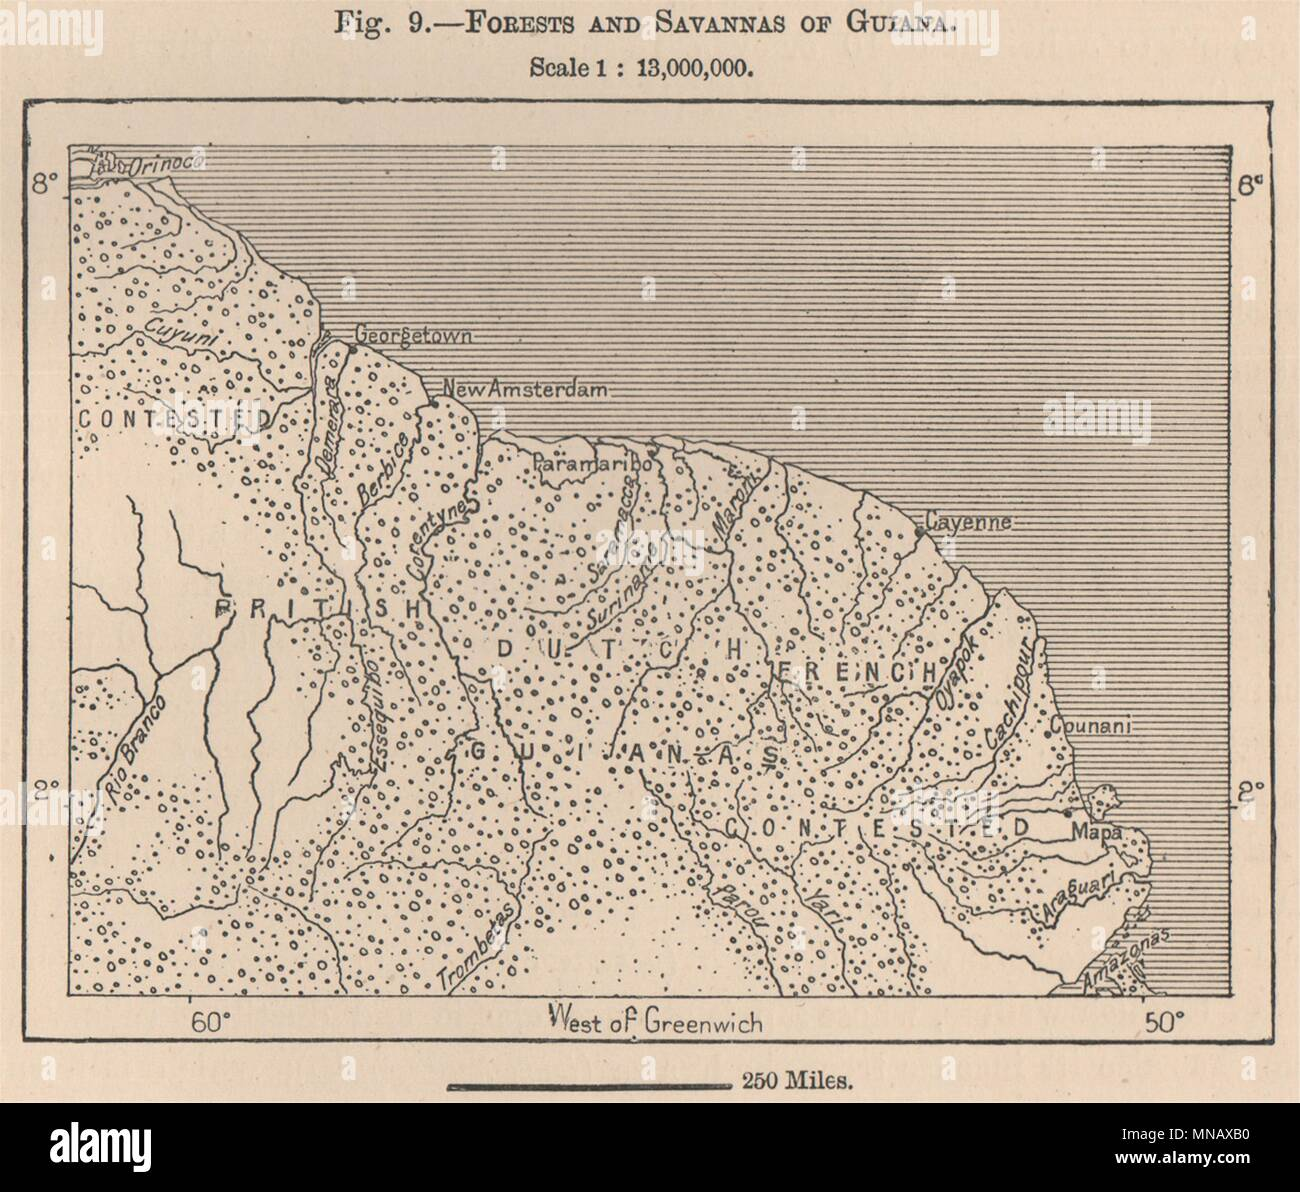 Forests and Savannas of Guyana. Guyana. South America 1885 old ...